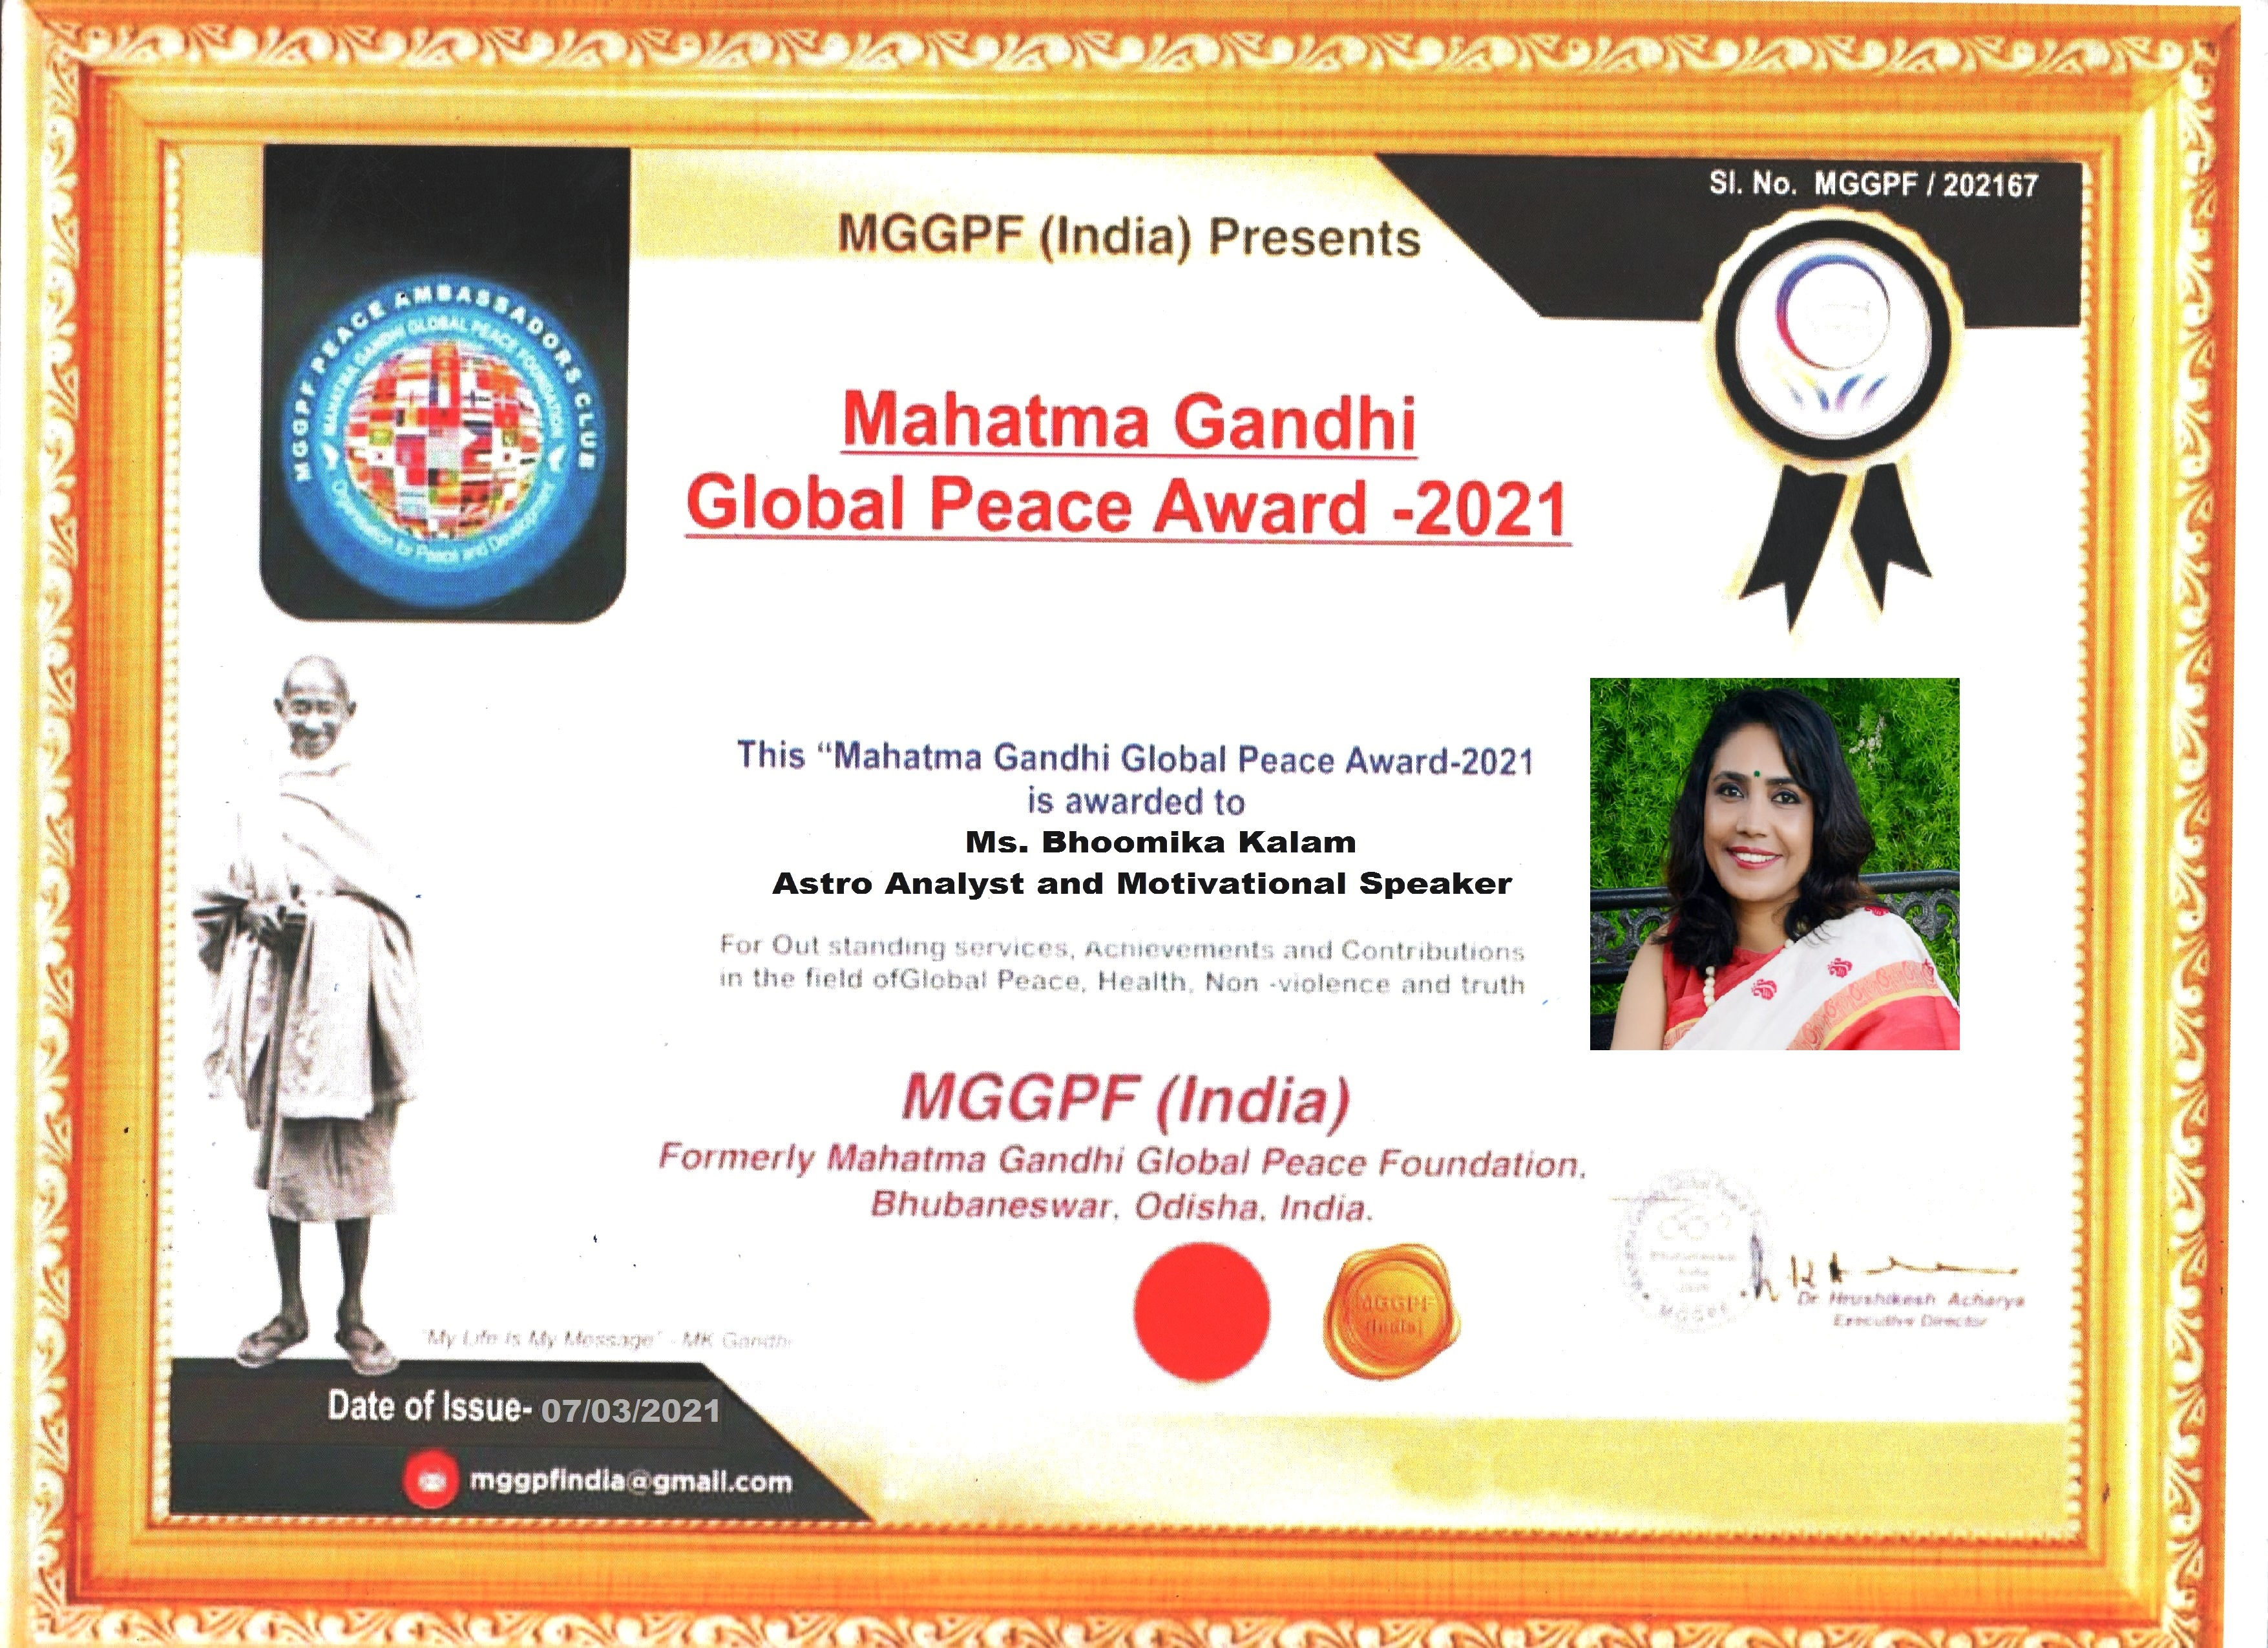 Mahatma Gandhi Global Peace Award 2021 - Bhoomika Kalam